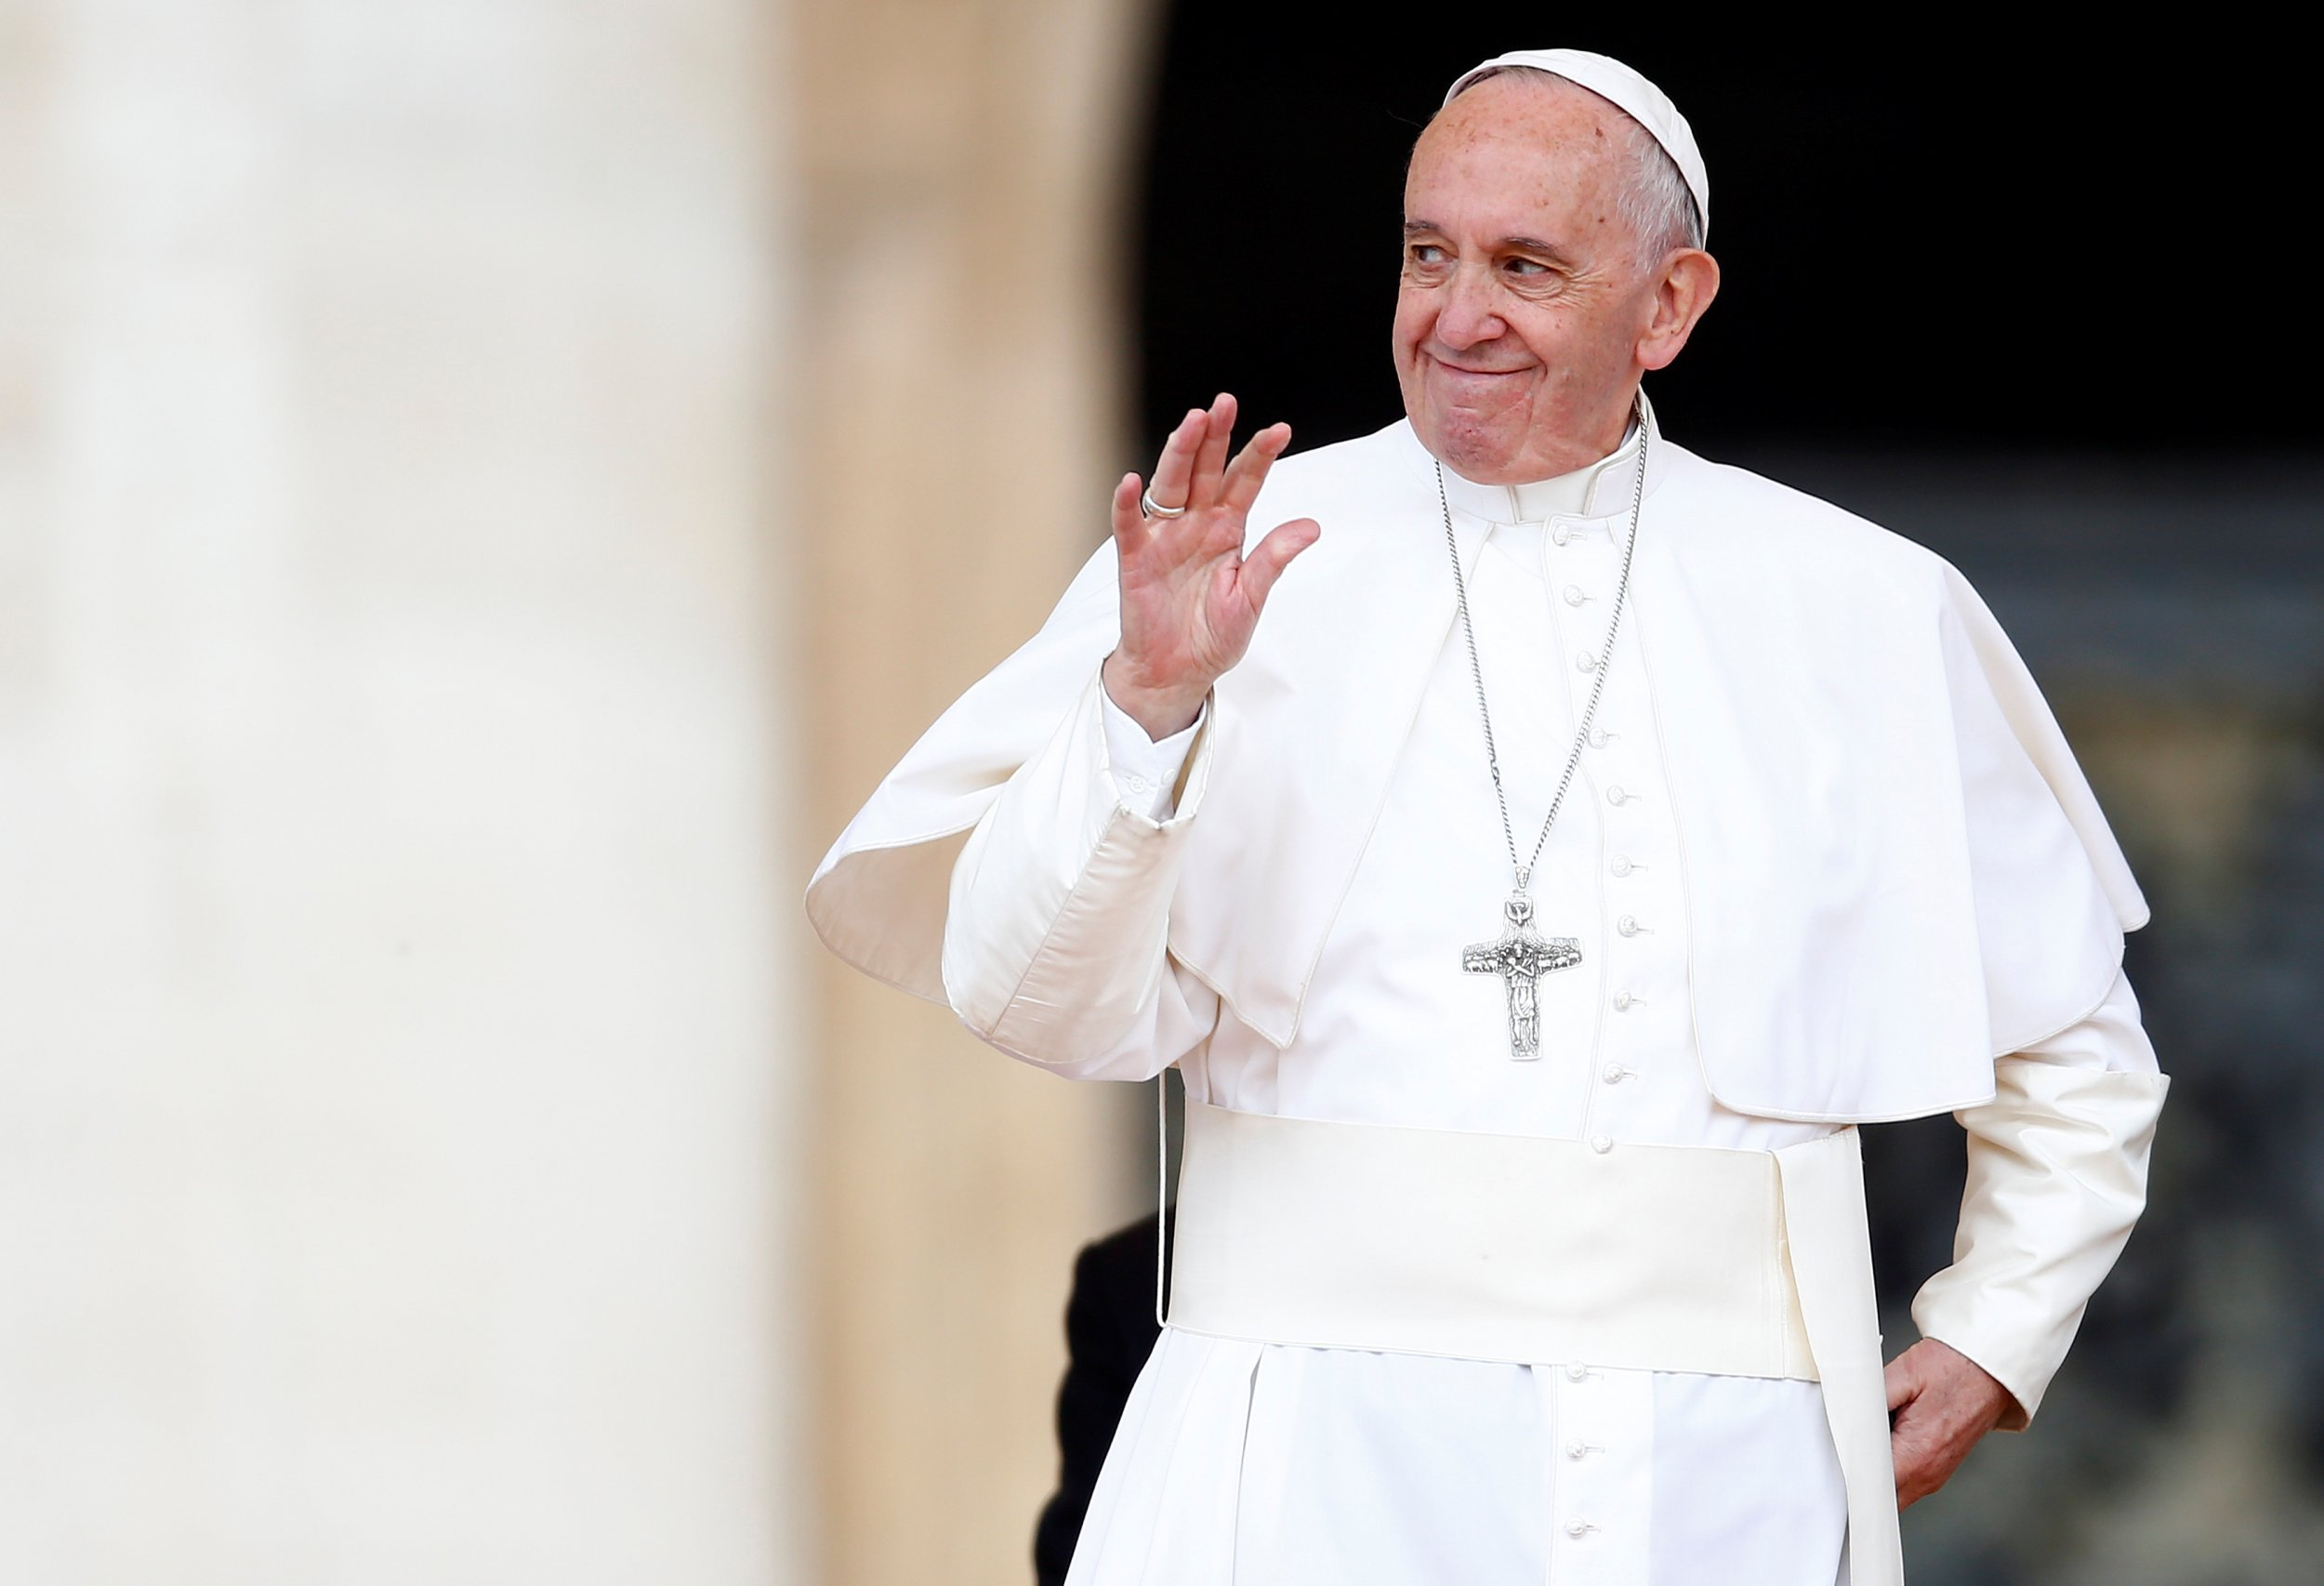 Pope Francis Is Meeting With Donald Trump But They Might